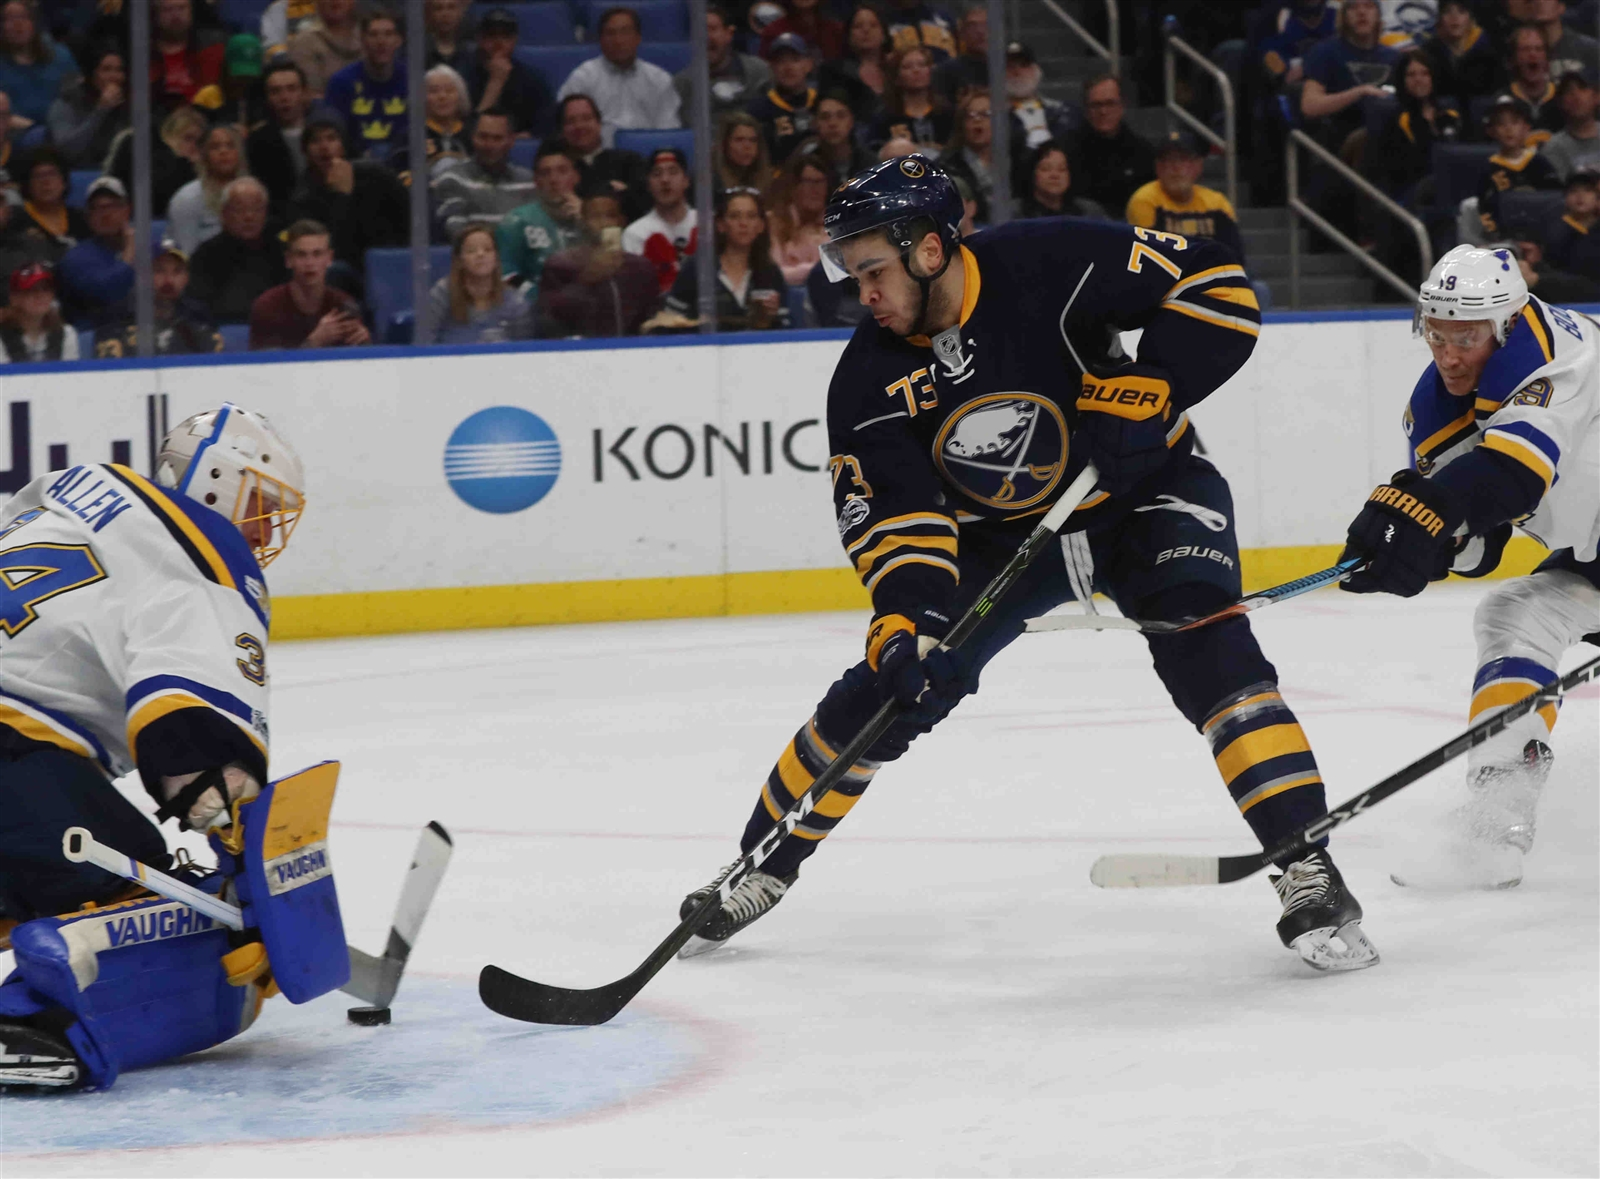 Nick Baptiste led the Sabres in goals per 60 minutes, scoring on 18.8 percent of his shots. (James P. McCoy/Buffalo News)